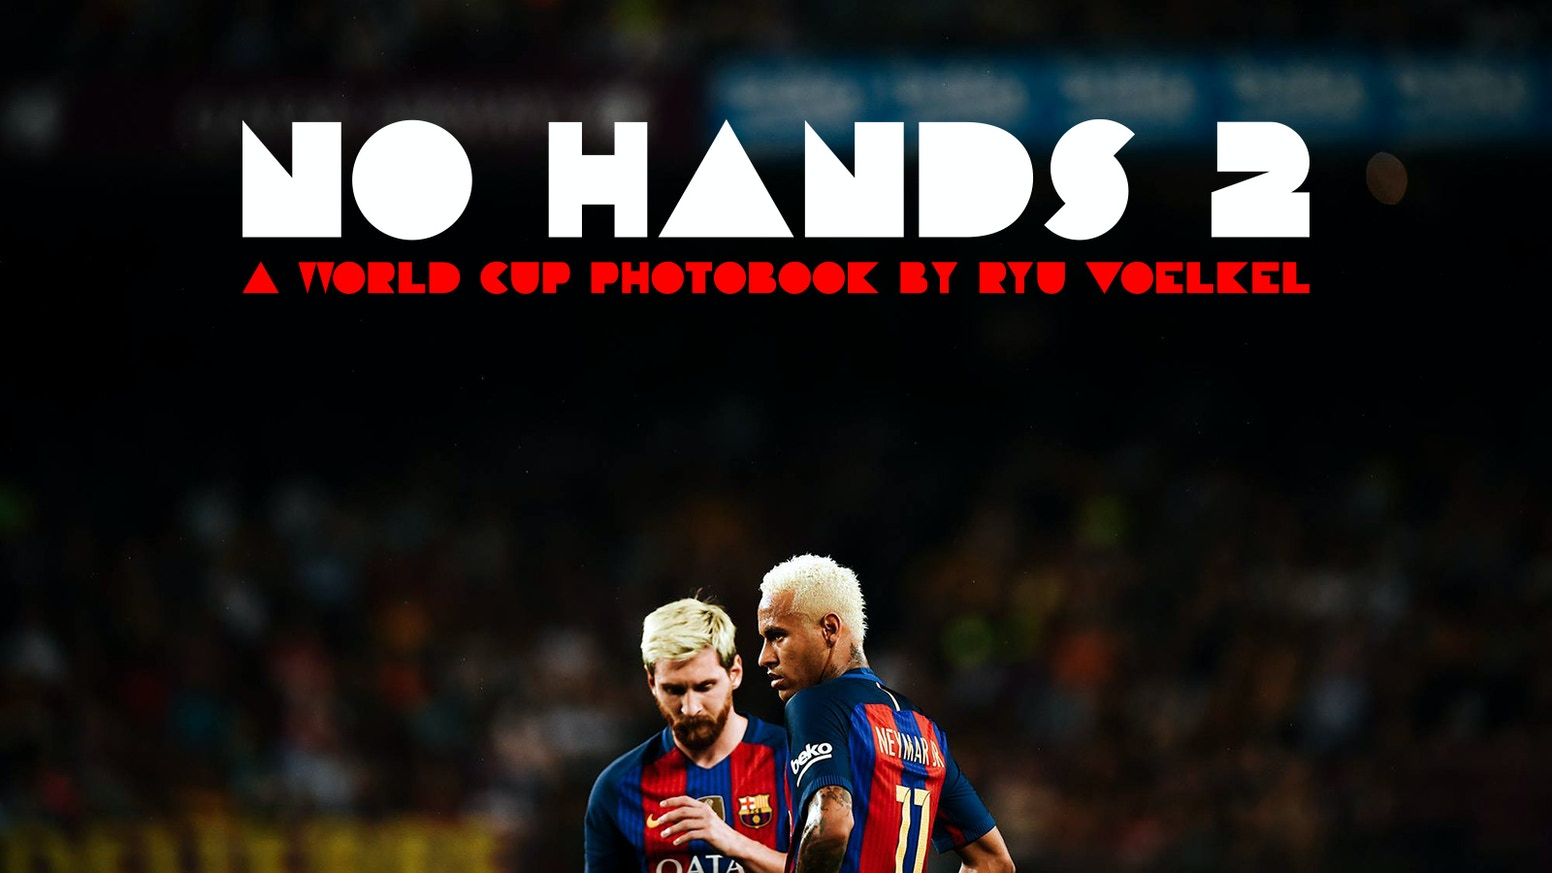 A football book like no other about the 2018 World Cup in Russia, by Ryu Voelkel. Buy the book now at nohands2.com.